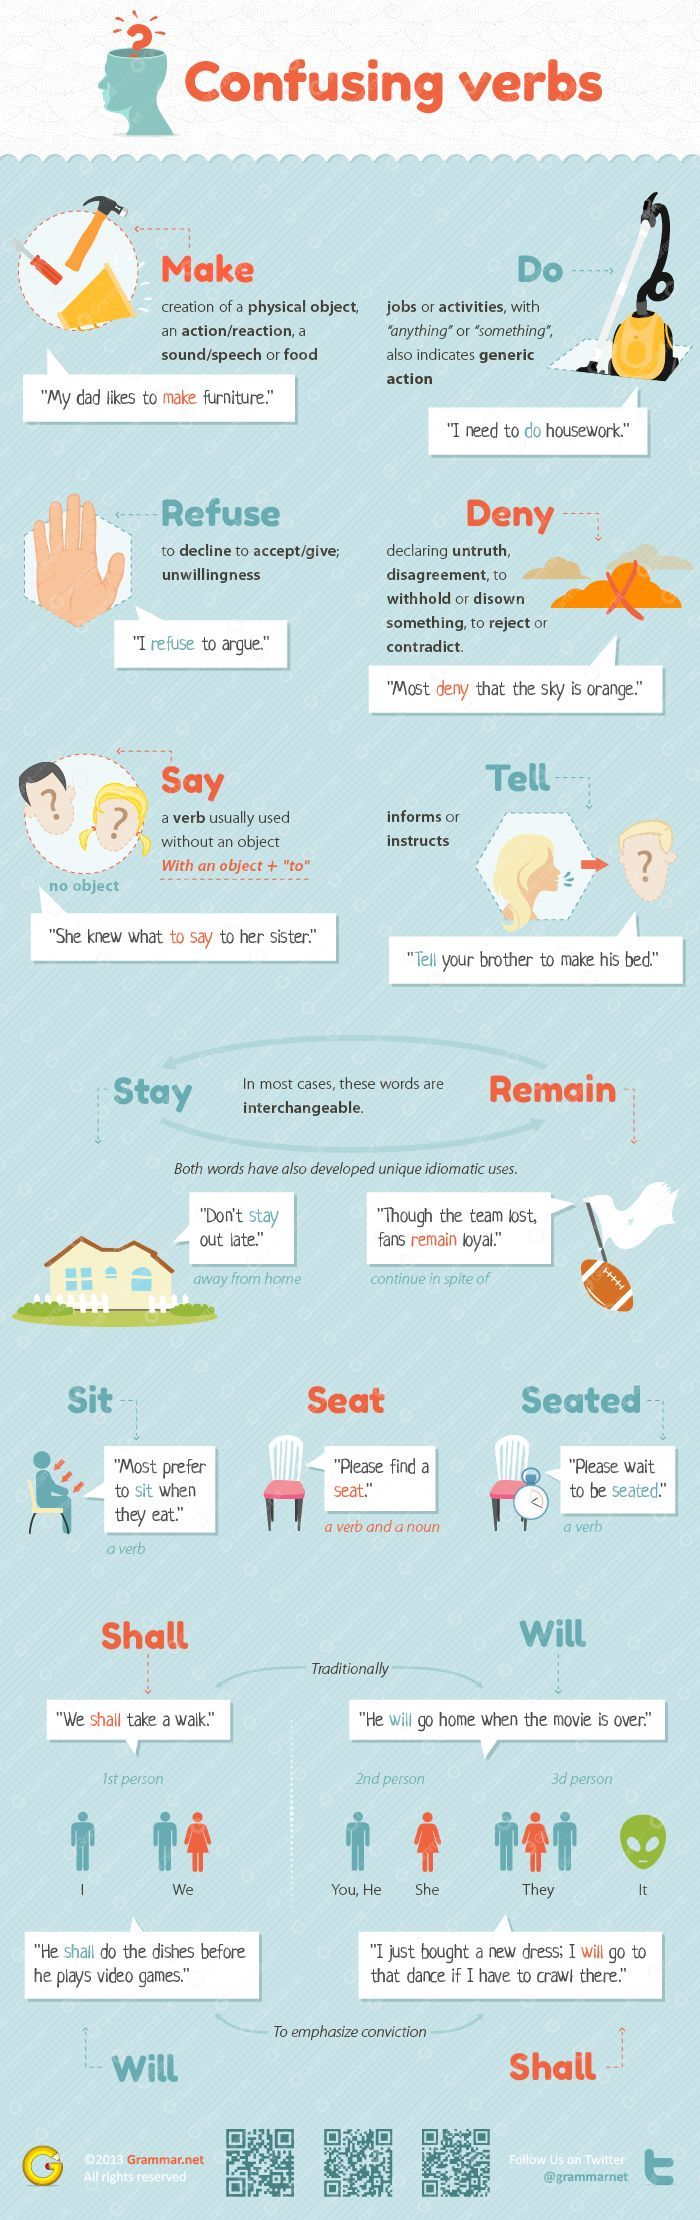 15 Confusing Verbs in English